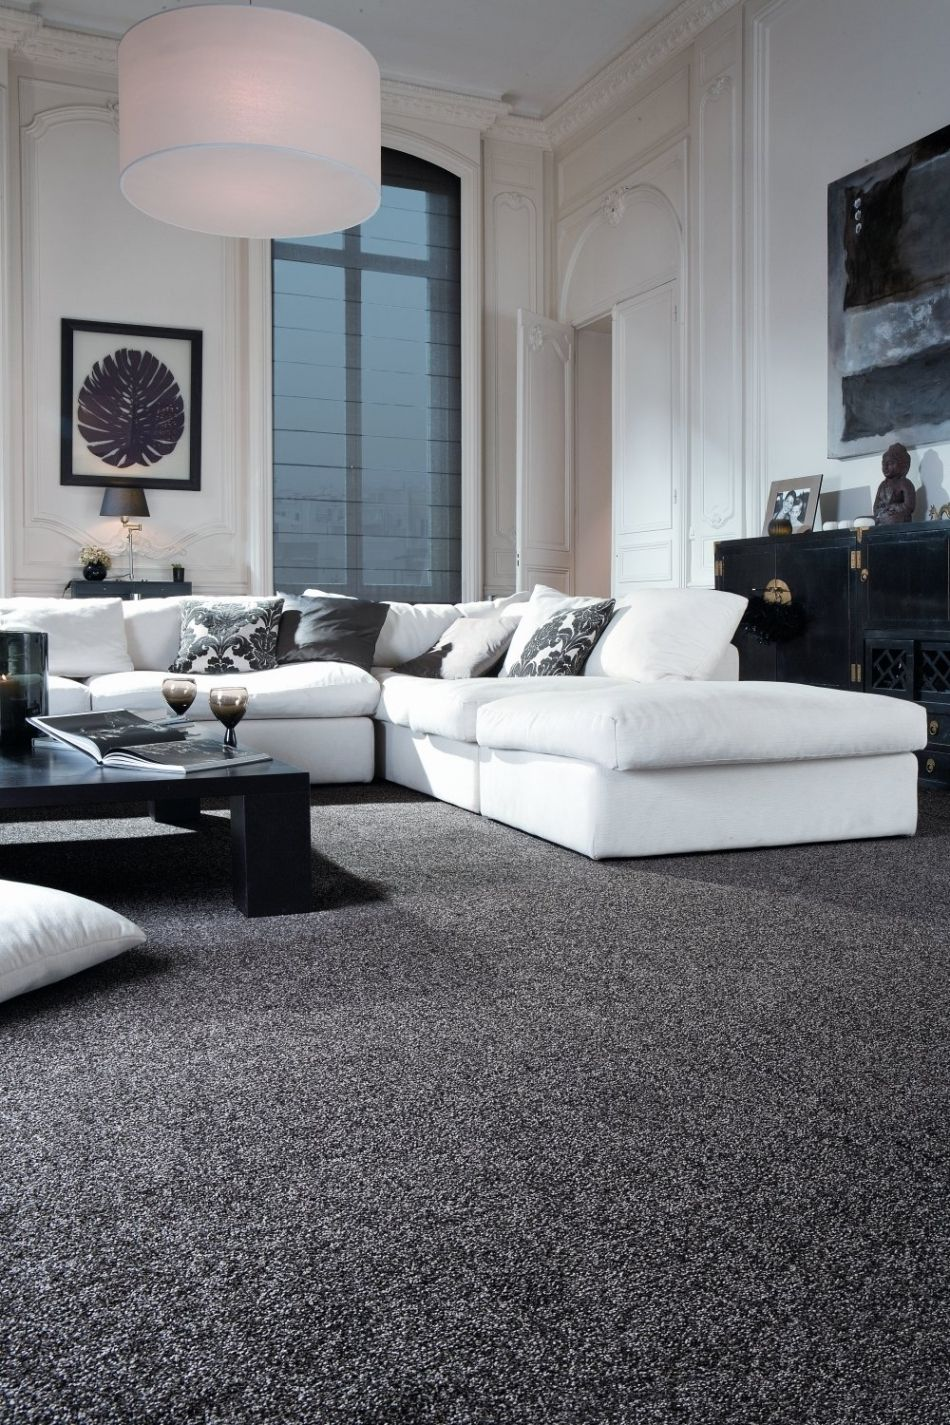 101 sophisticated living room modern cool carpet rug with music rh pinterest com